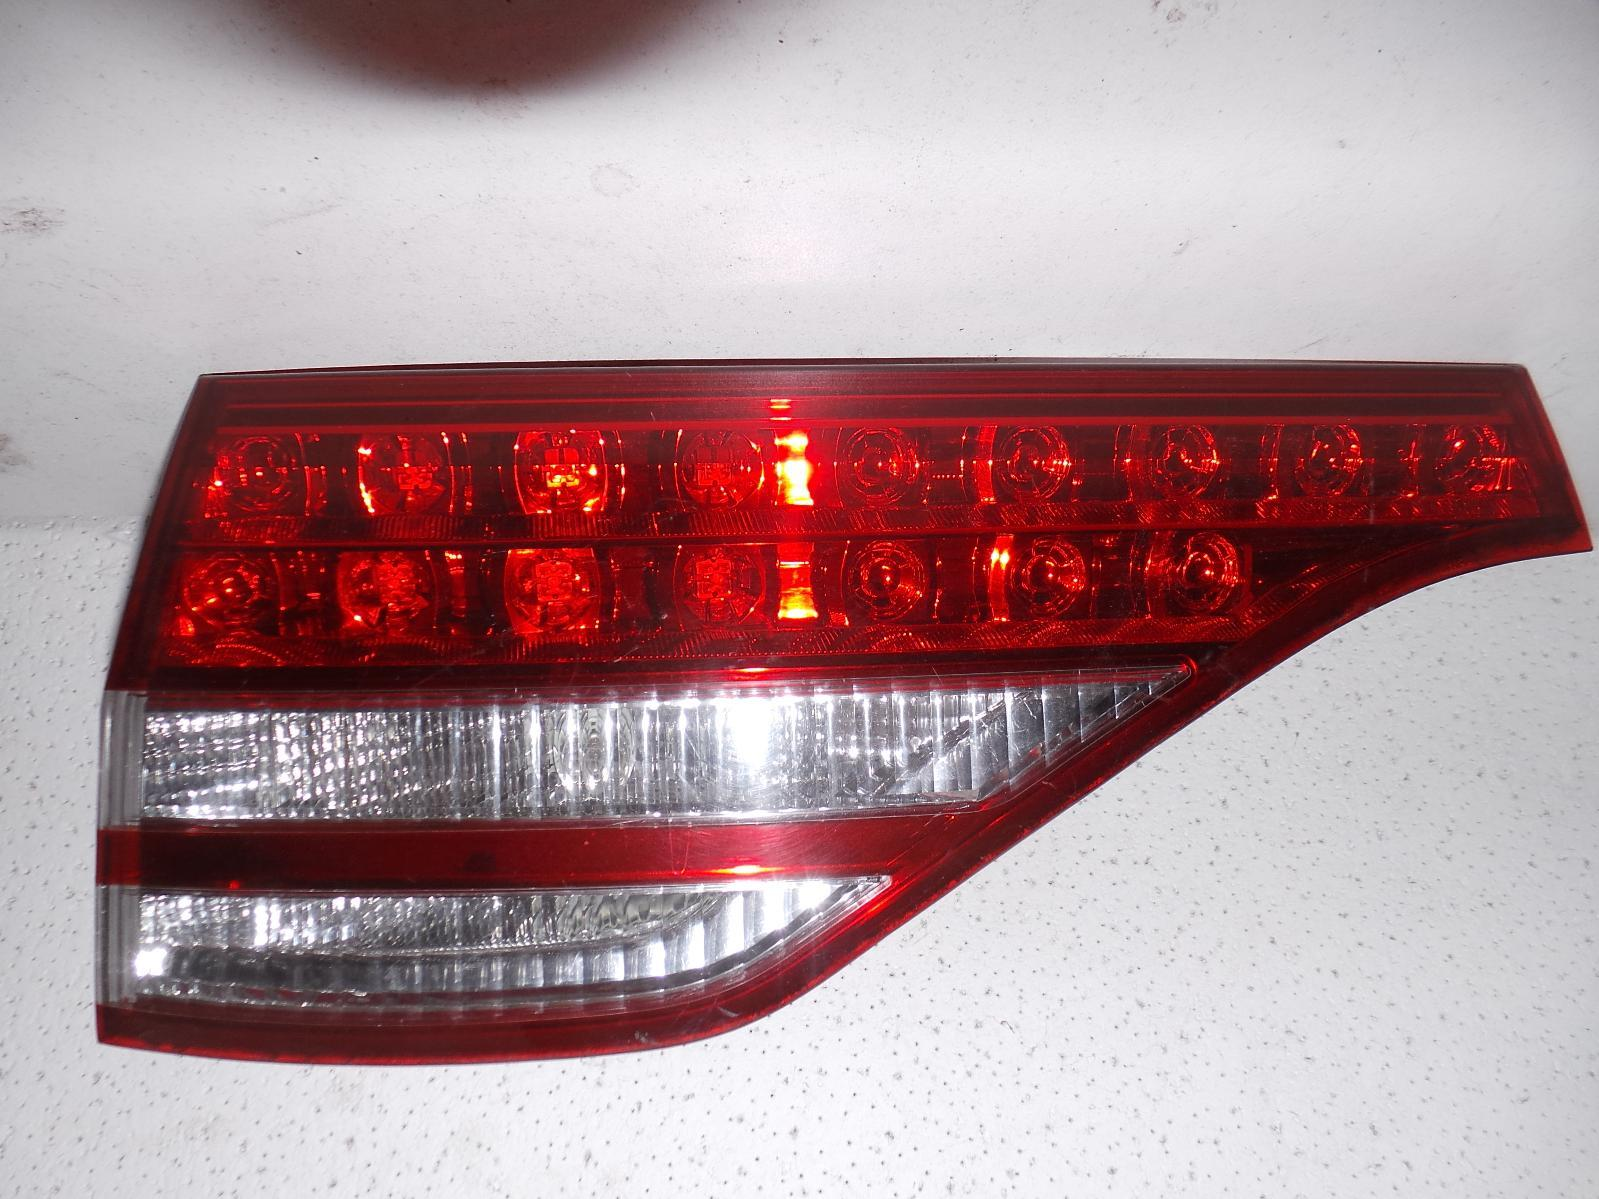 TOYOTA TARAGO, Rear Garnish, TAILGATE LAMP (LH SIDE), ACR50R, 03/06-12/08